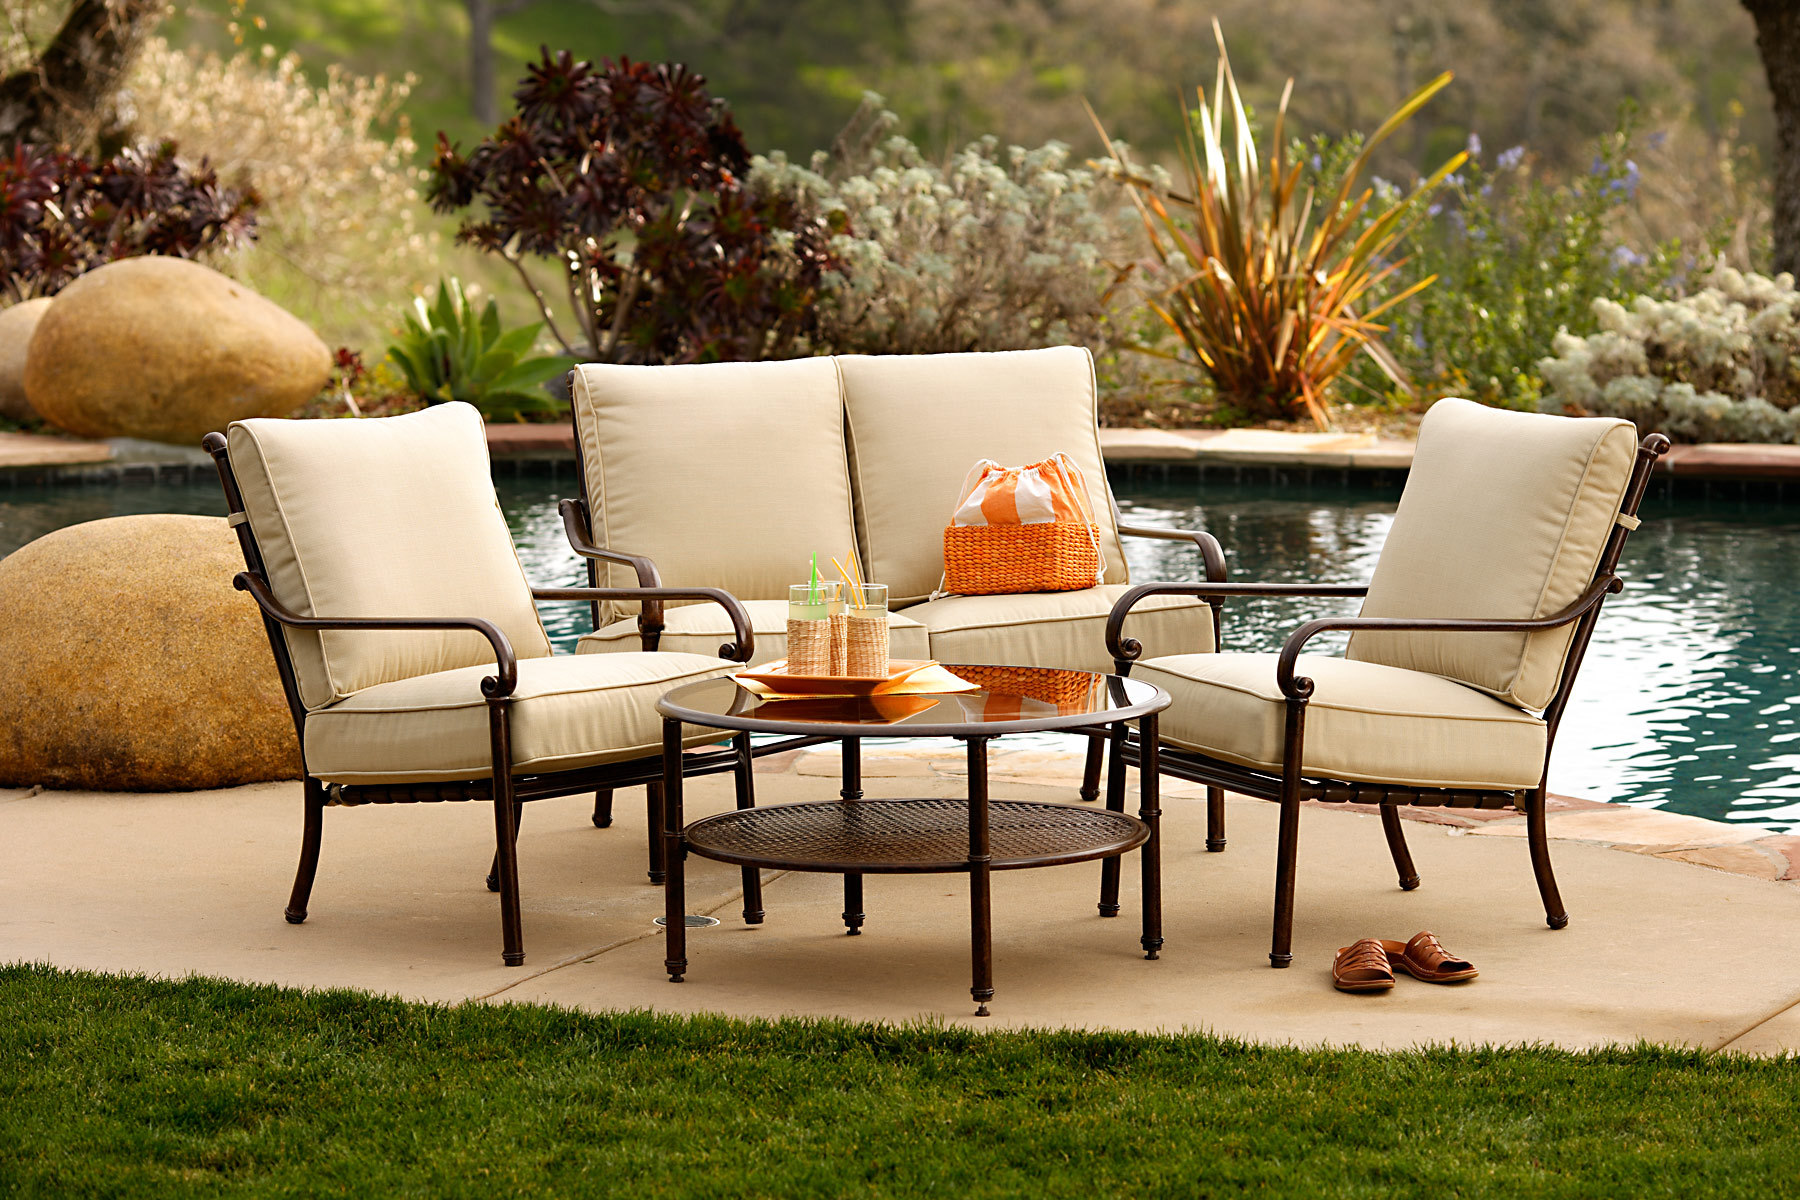 Lovely Metal Patio Furniture Sets For Outdoor Small Spaces